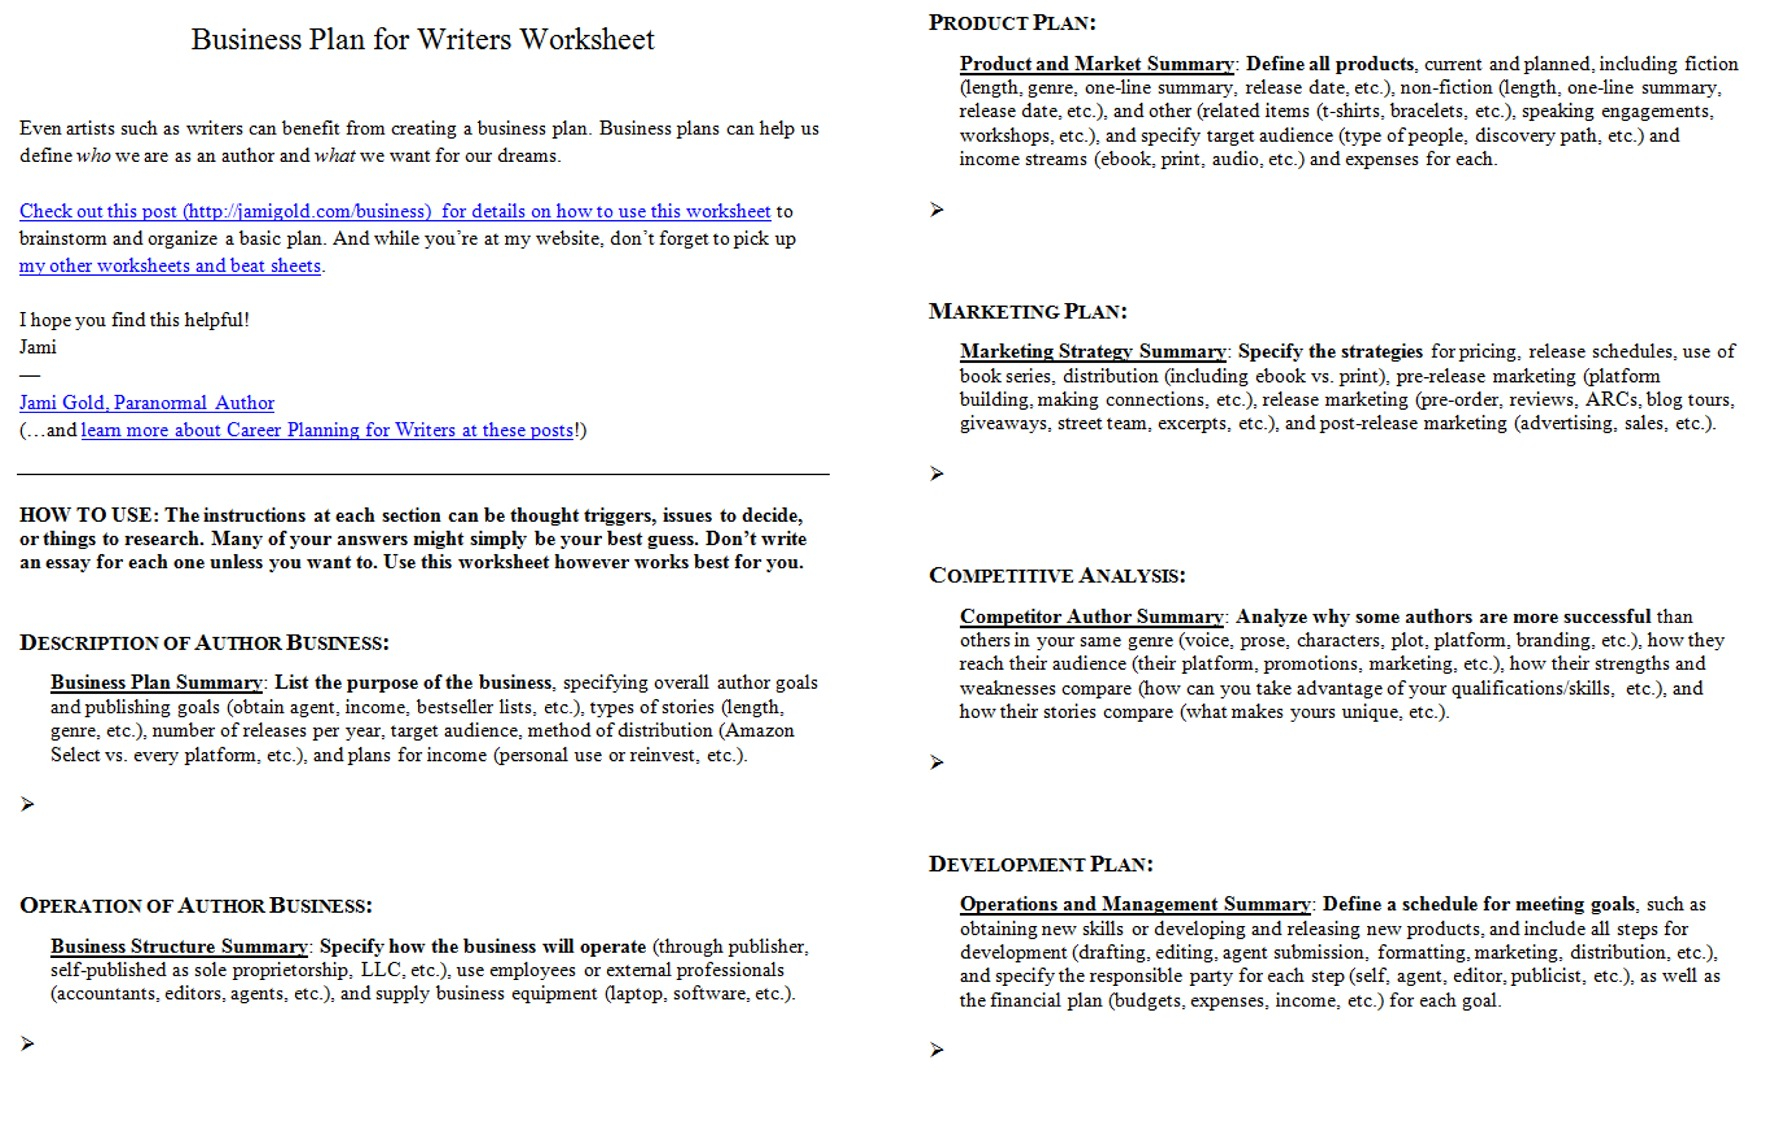 Aldiablosus  Marvellous Worksheets For Writers  Jami Gold Paranormal Author With Magnificent Screen Shot Of Both Pages Of The Business Plan For Writers Worksheet With Beauteous Elements Compound And Mixtures Worksheet Also Snow Worksheets In Addition Kindergarten Fall Worksheets And Point Of View Worksheet Th Grade As Well As Idiom Worksheets Pdf Additionally Dynamic Math Worksheets From Jamigoldcom With Aldiablosus  Magnificent Worksheets For Writers  Jami Gold Paranormal Author With Beauteous Screen Shot Of Both Pages Of The Business Plan For Writers Worksheet And Marvellous Elements Compound And Mixtures Worksheet Also Snow Worksheets In Addition Kindergarten Fall Worksheets From Jamigoldcom